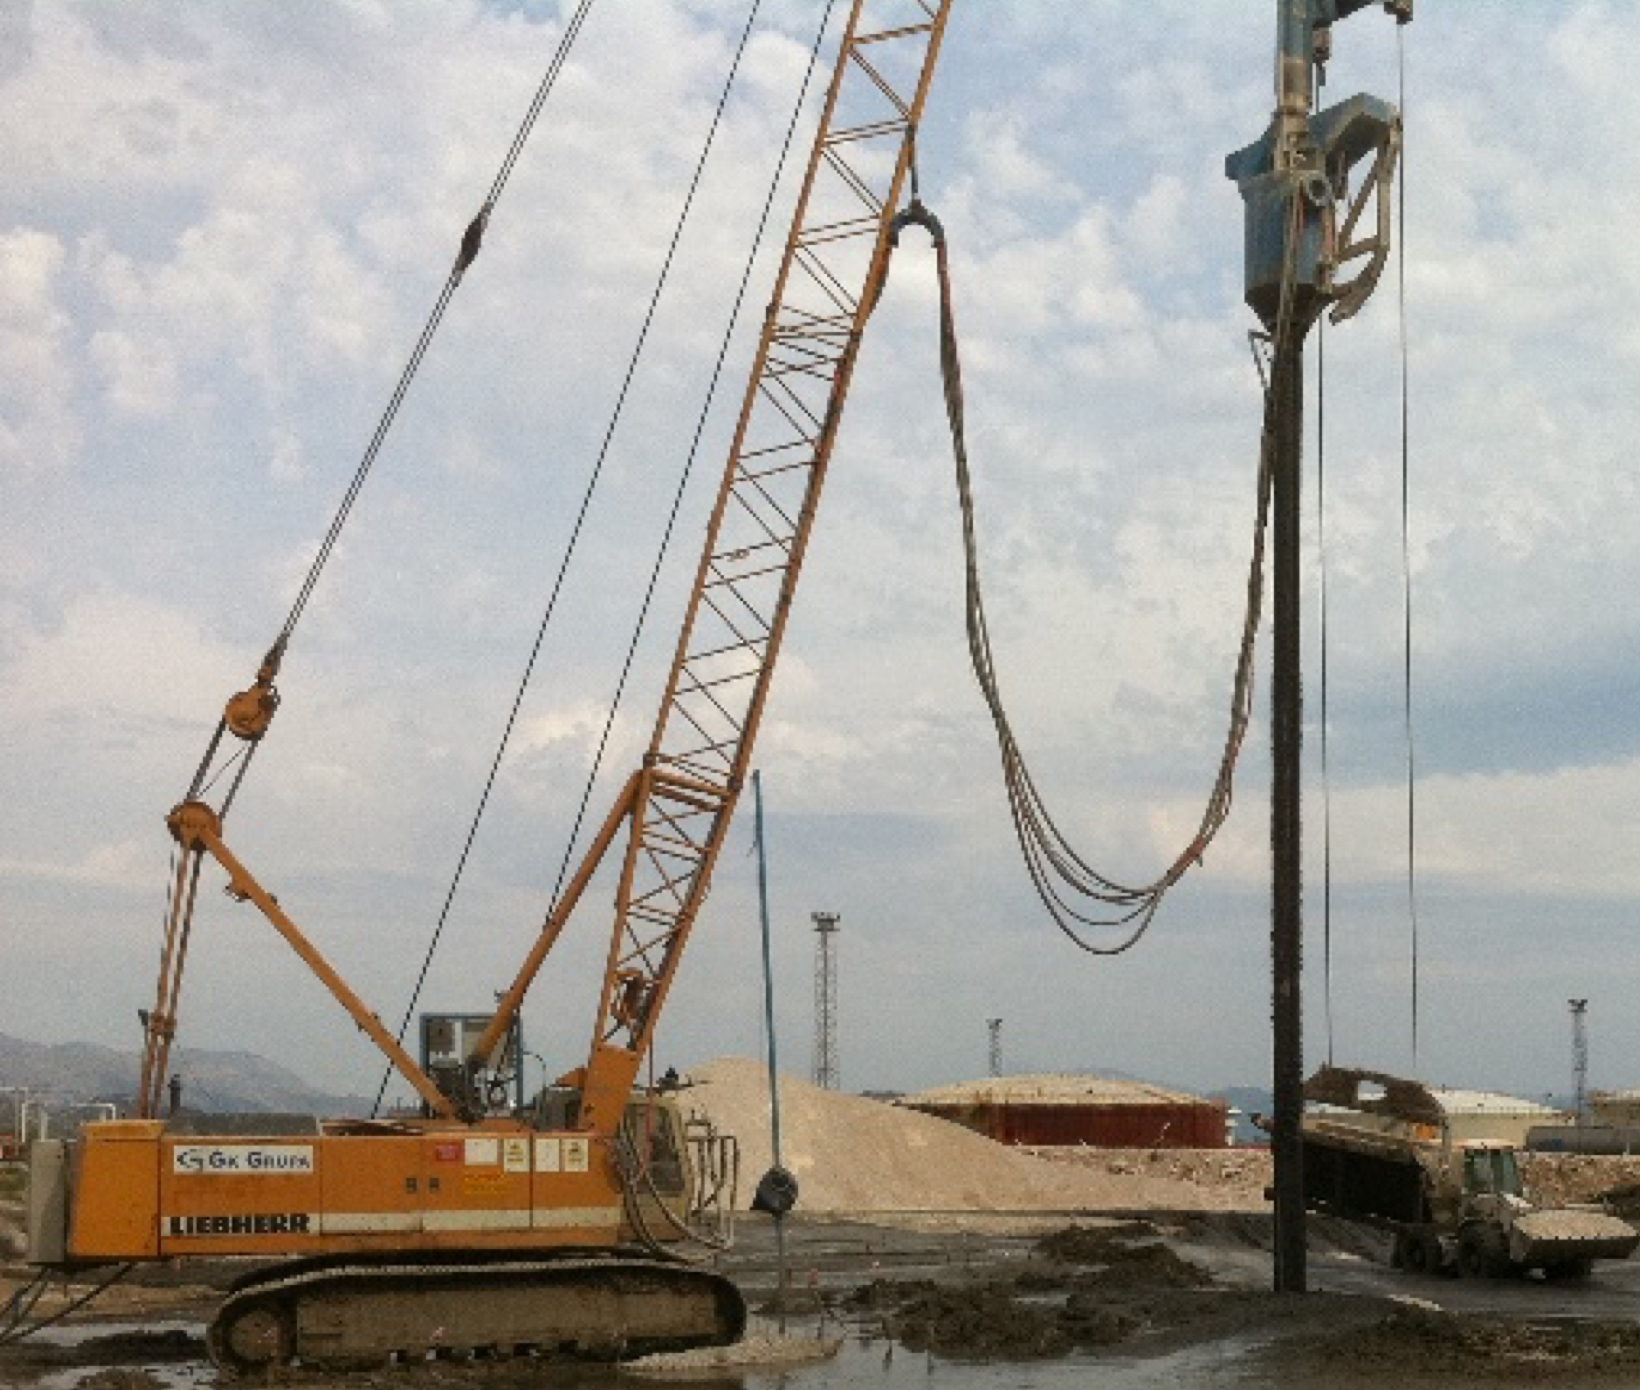 BC1 rig with Vibroflot B27 on Liebherr crane